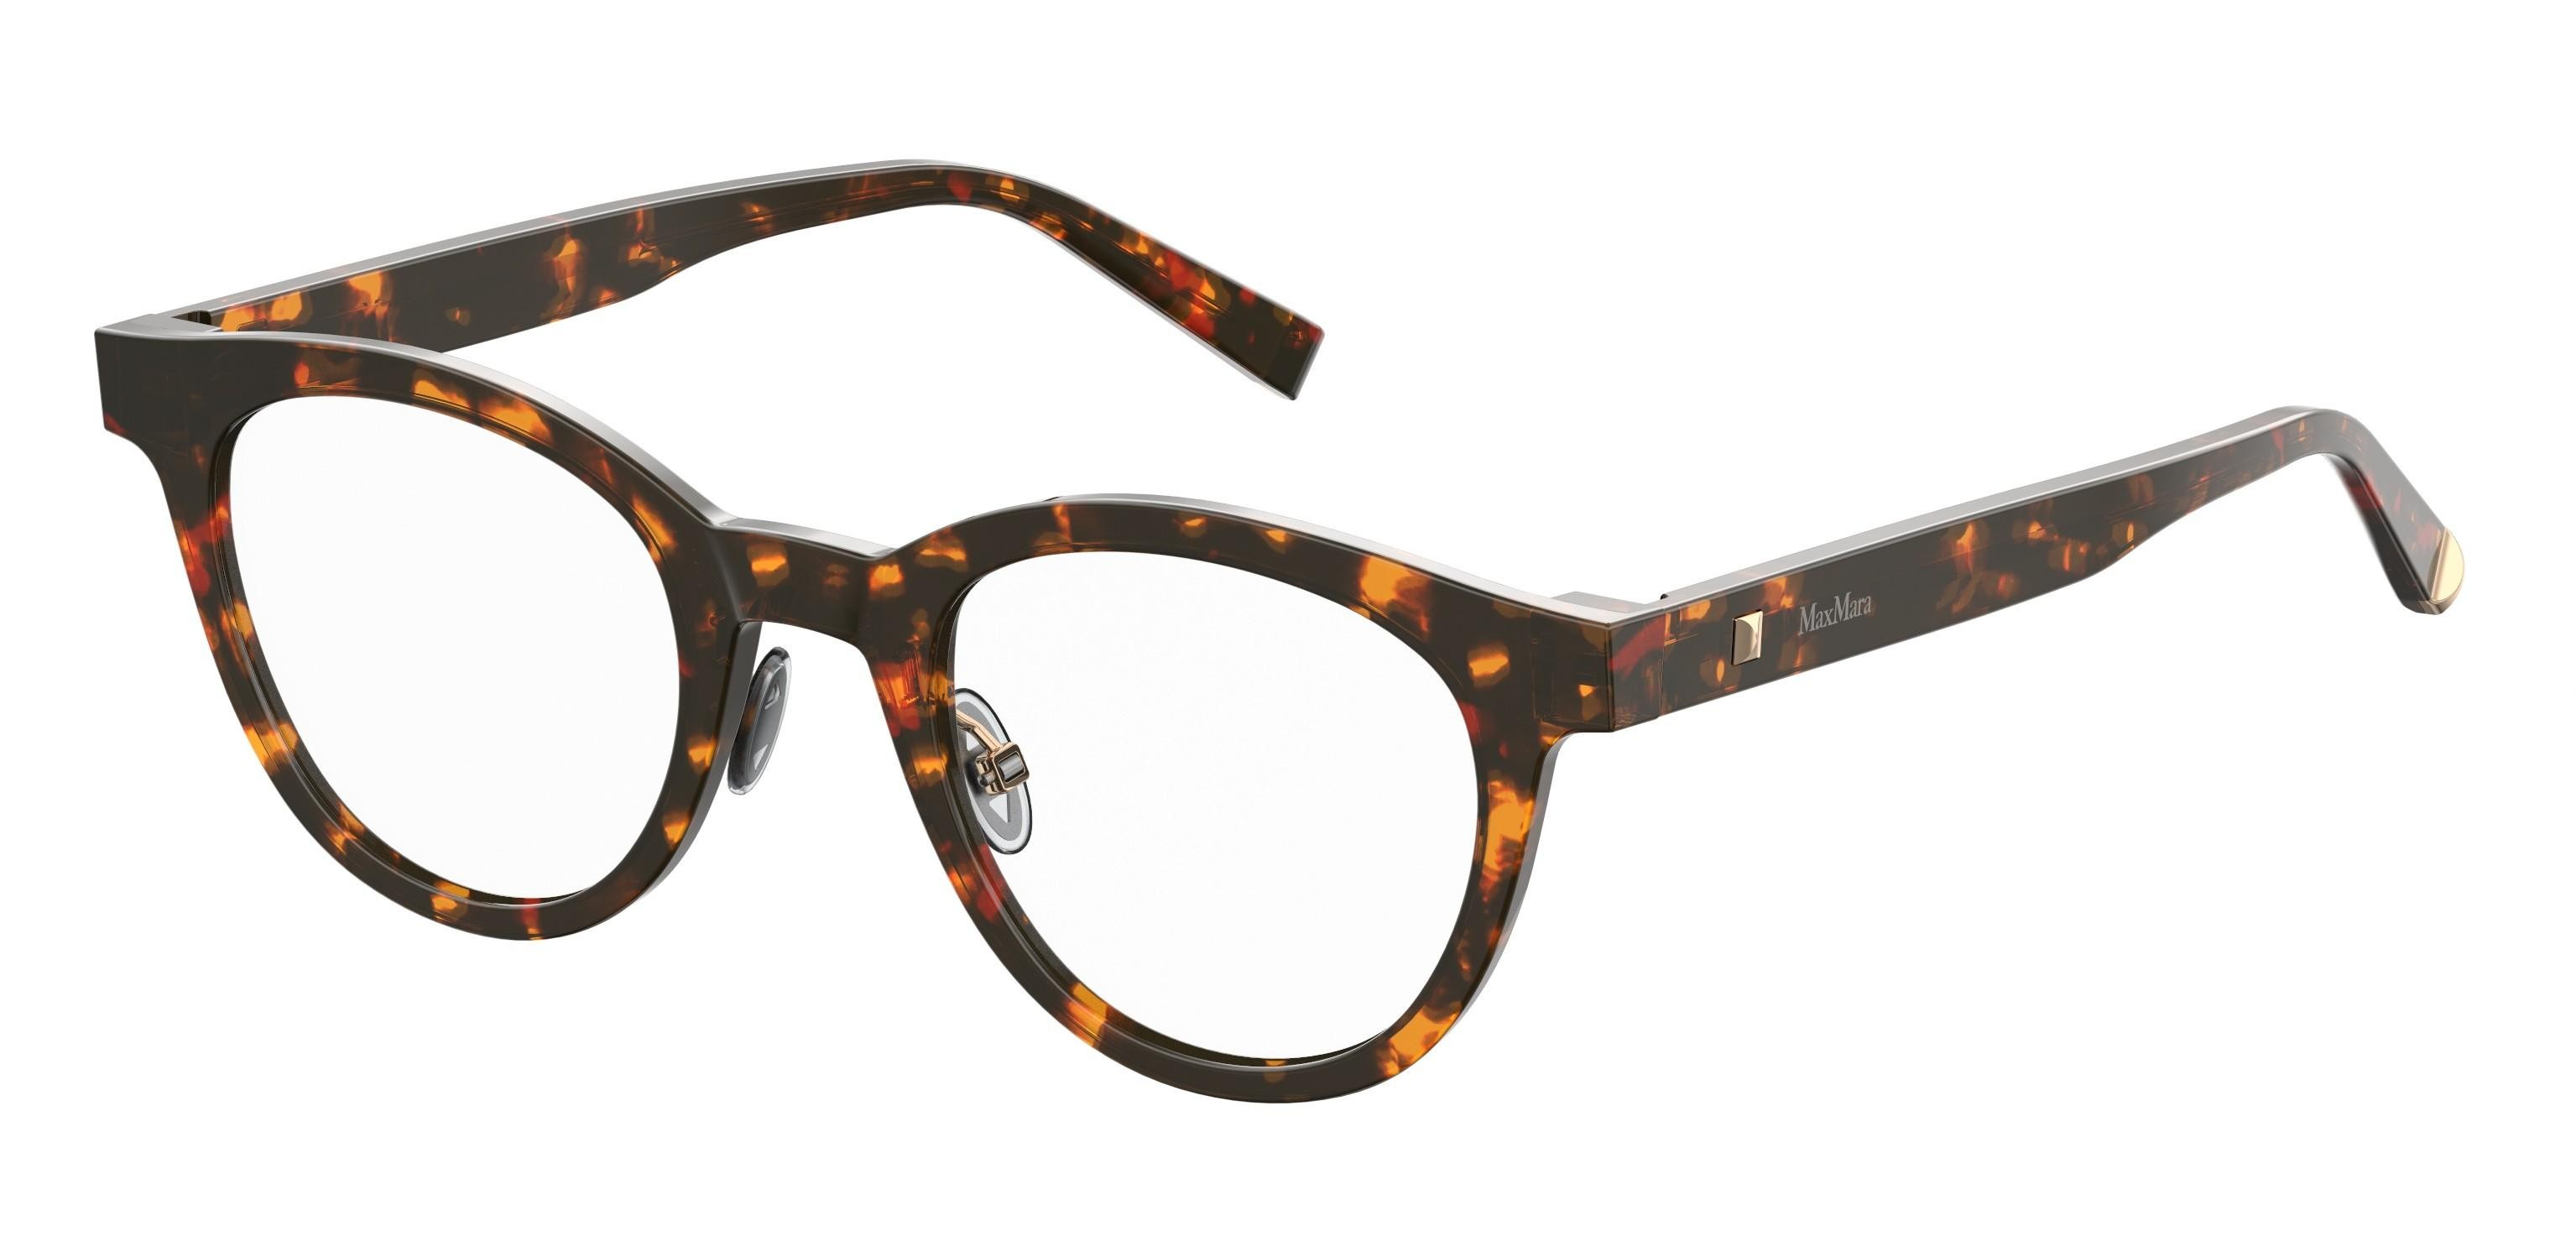 Max Mara eyeglasses MM 1334